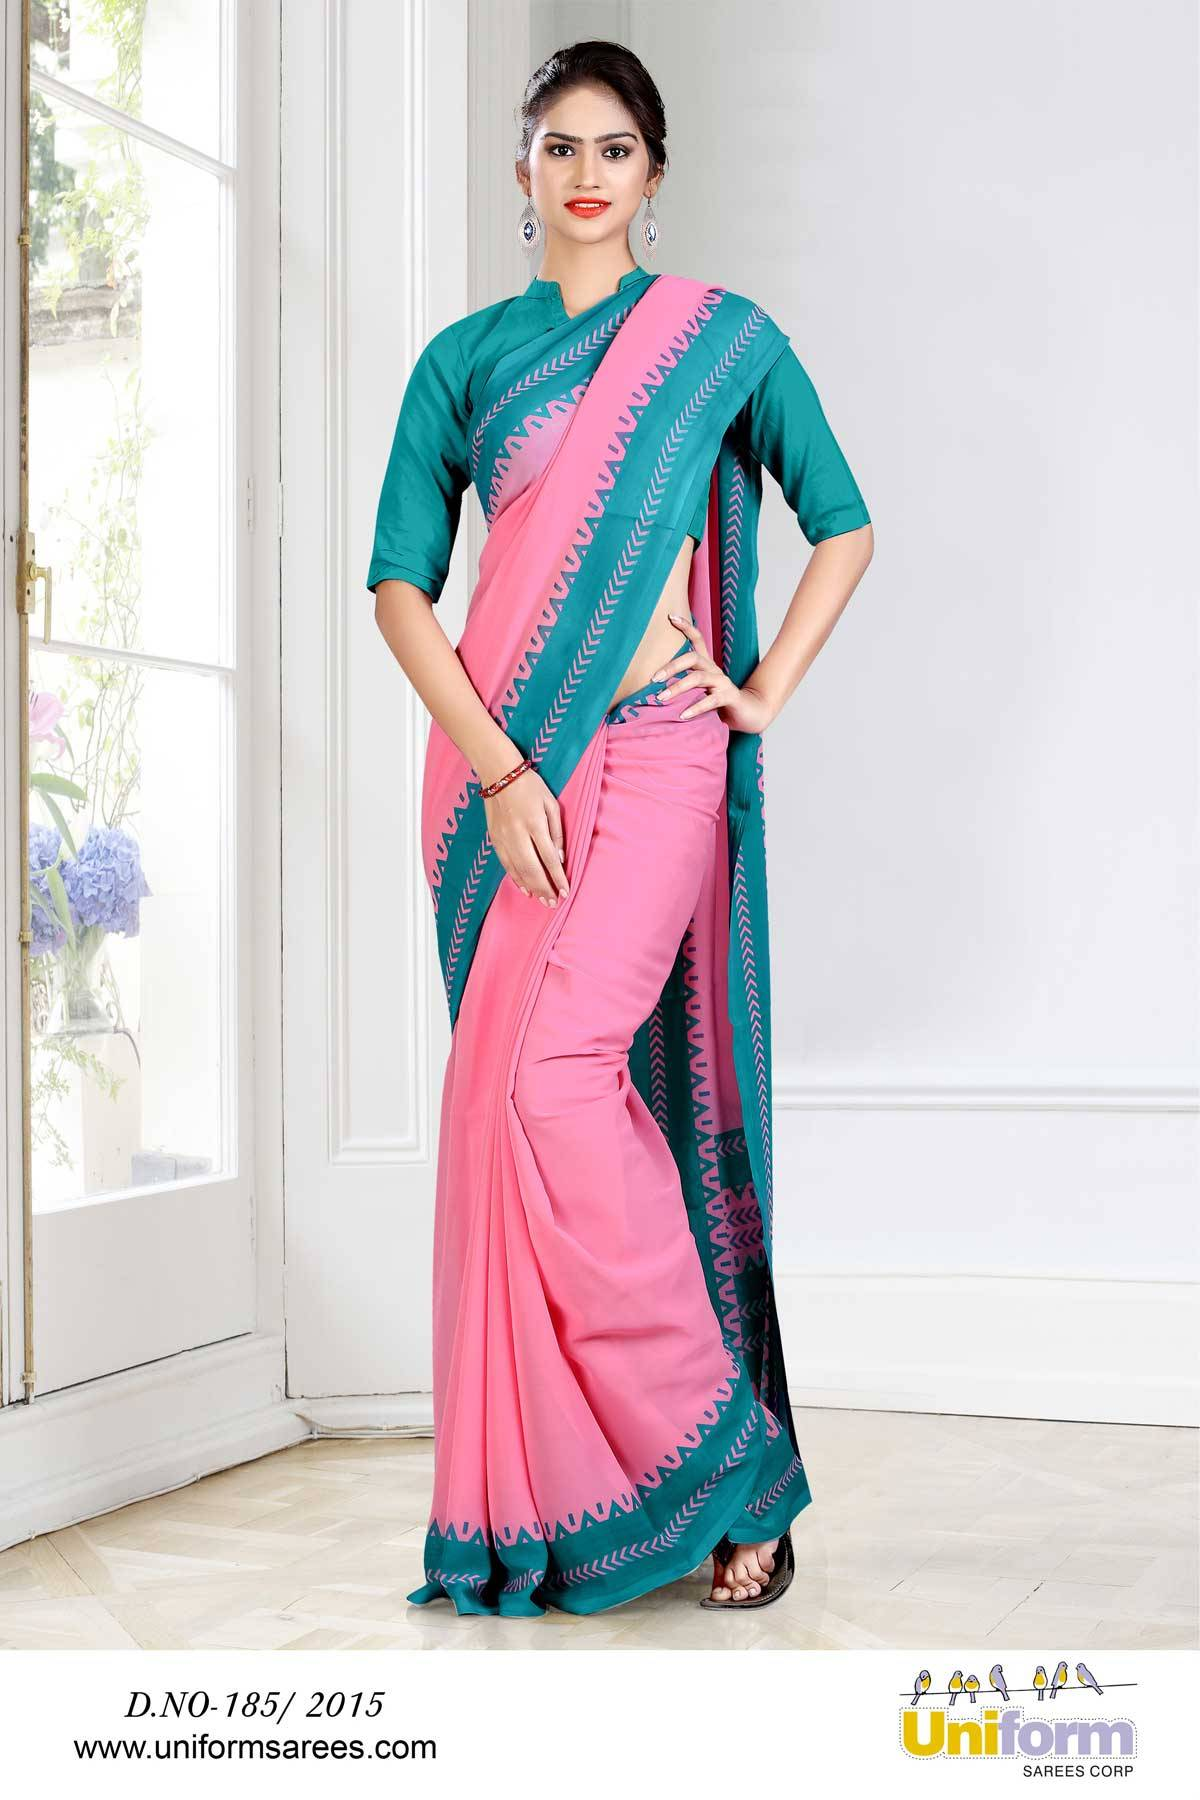 Uniform Sarees For Hospital Staff | Uniform Design No 185/2015